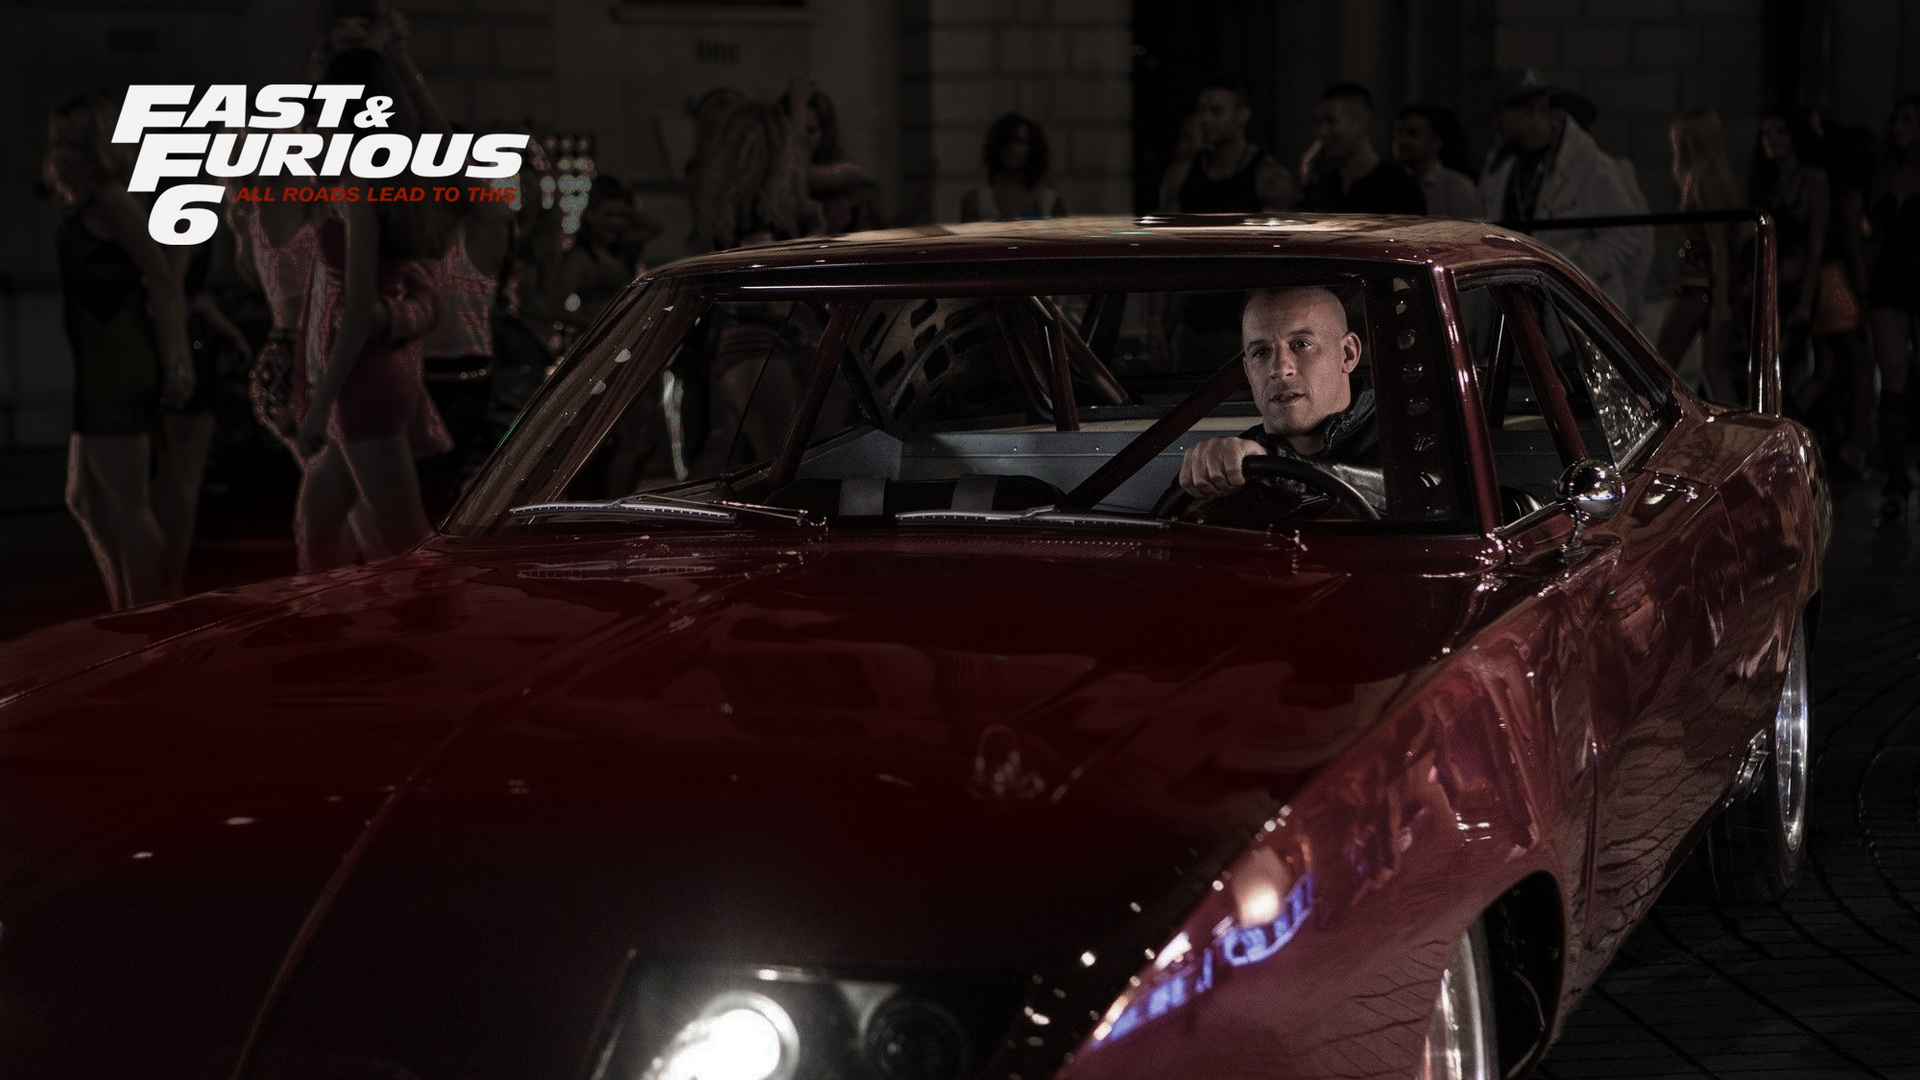 fast and furious fast and furious 6 fast and furious hd wallpapers 1920x1080